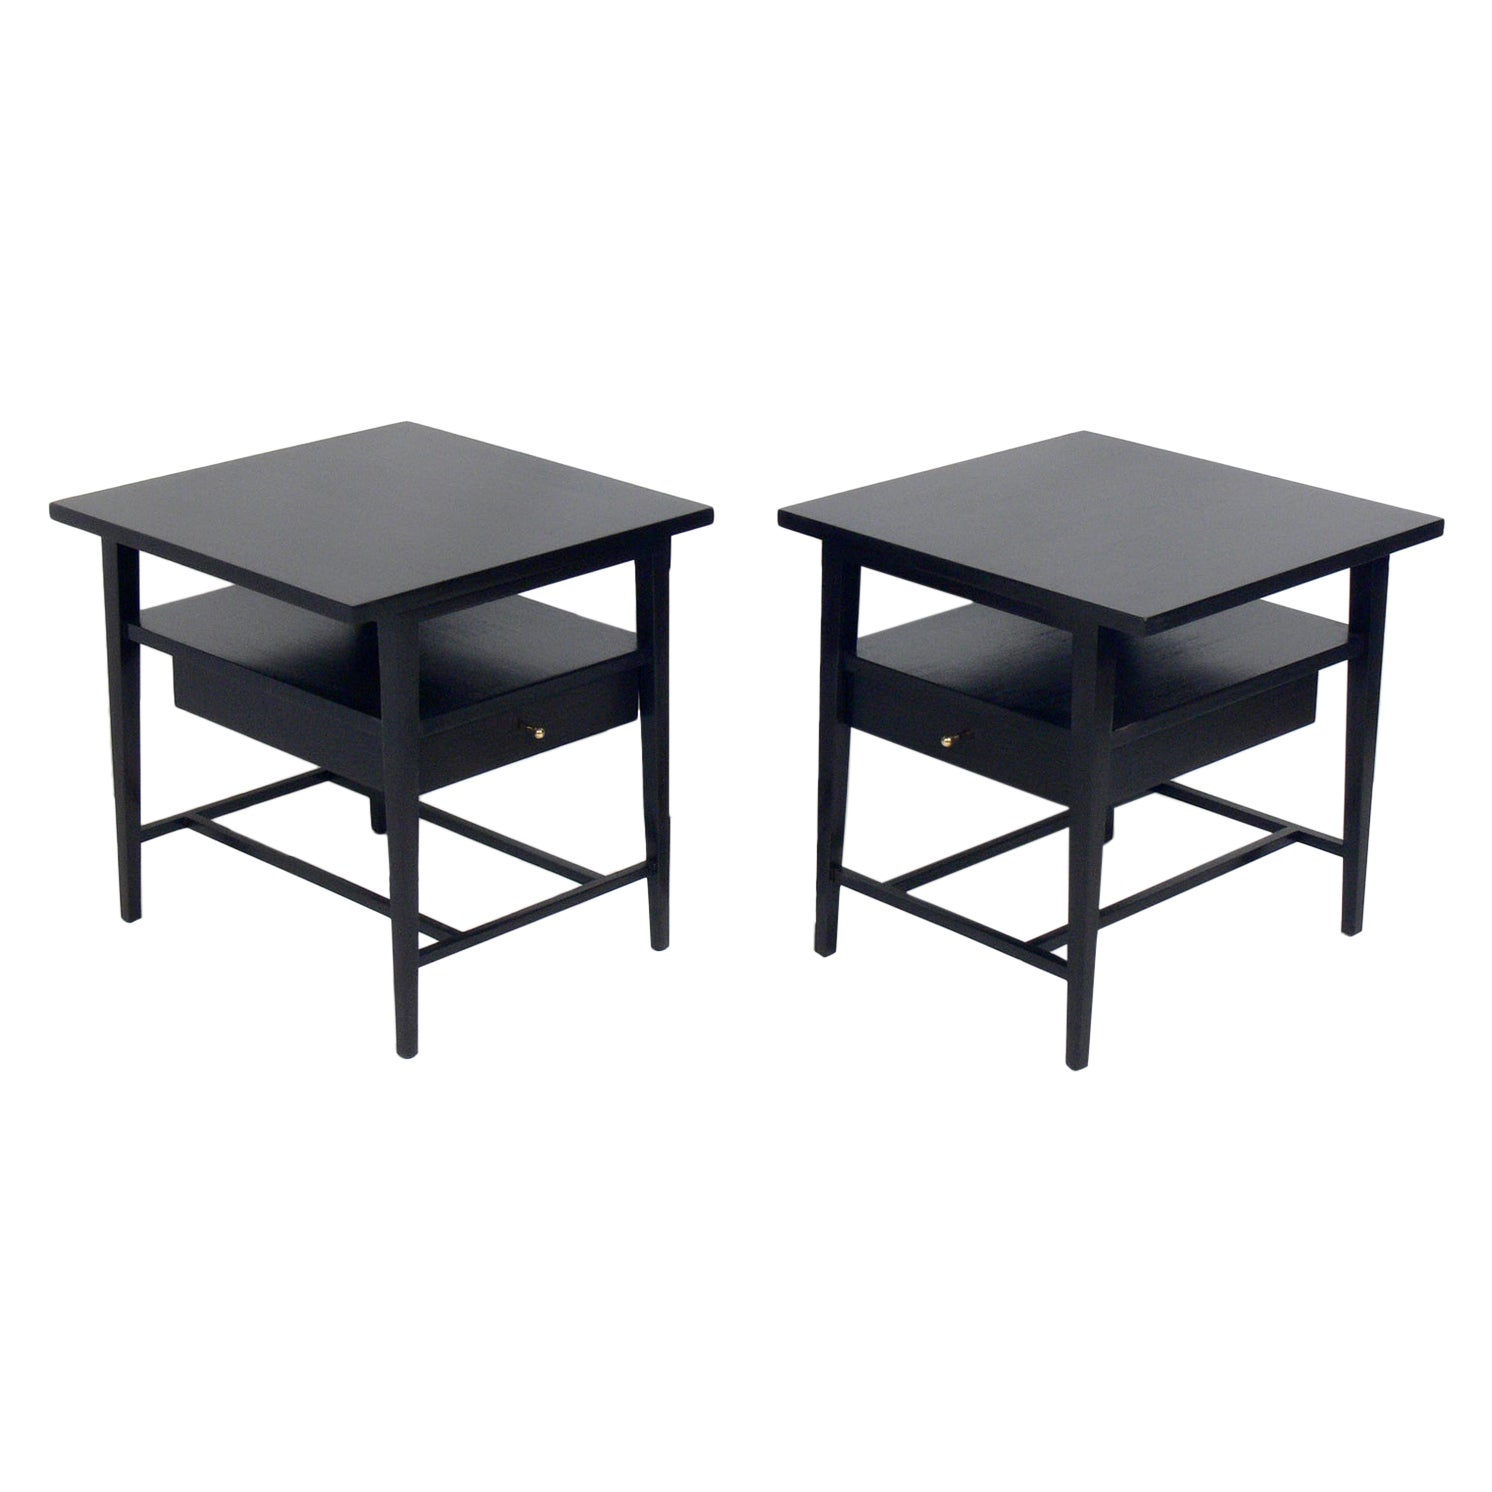 Paul McCobb Nightstands or End Tables